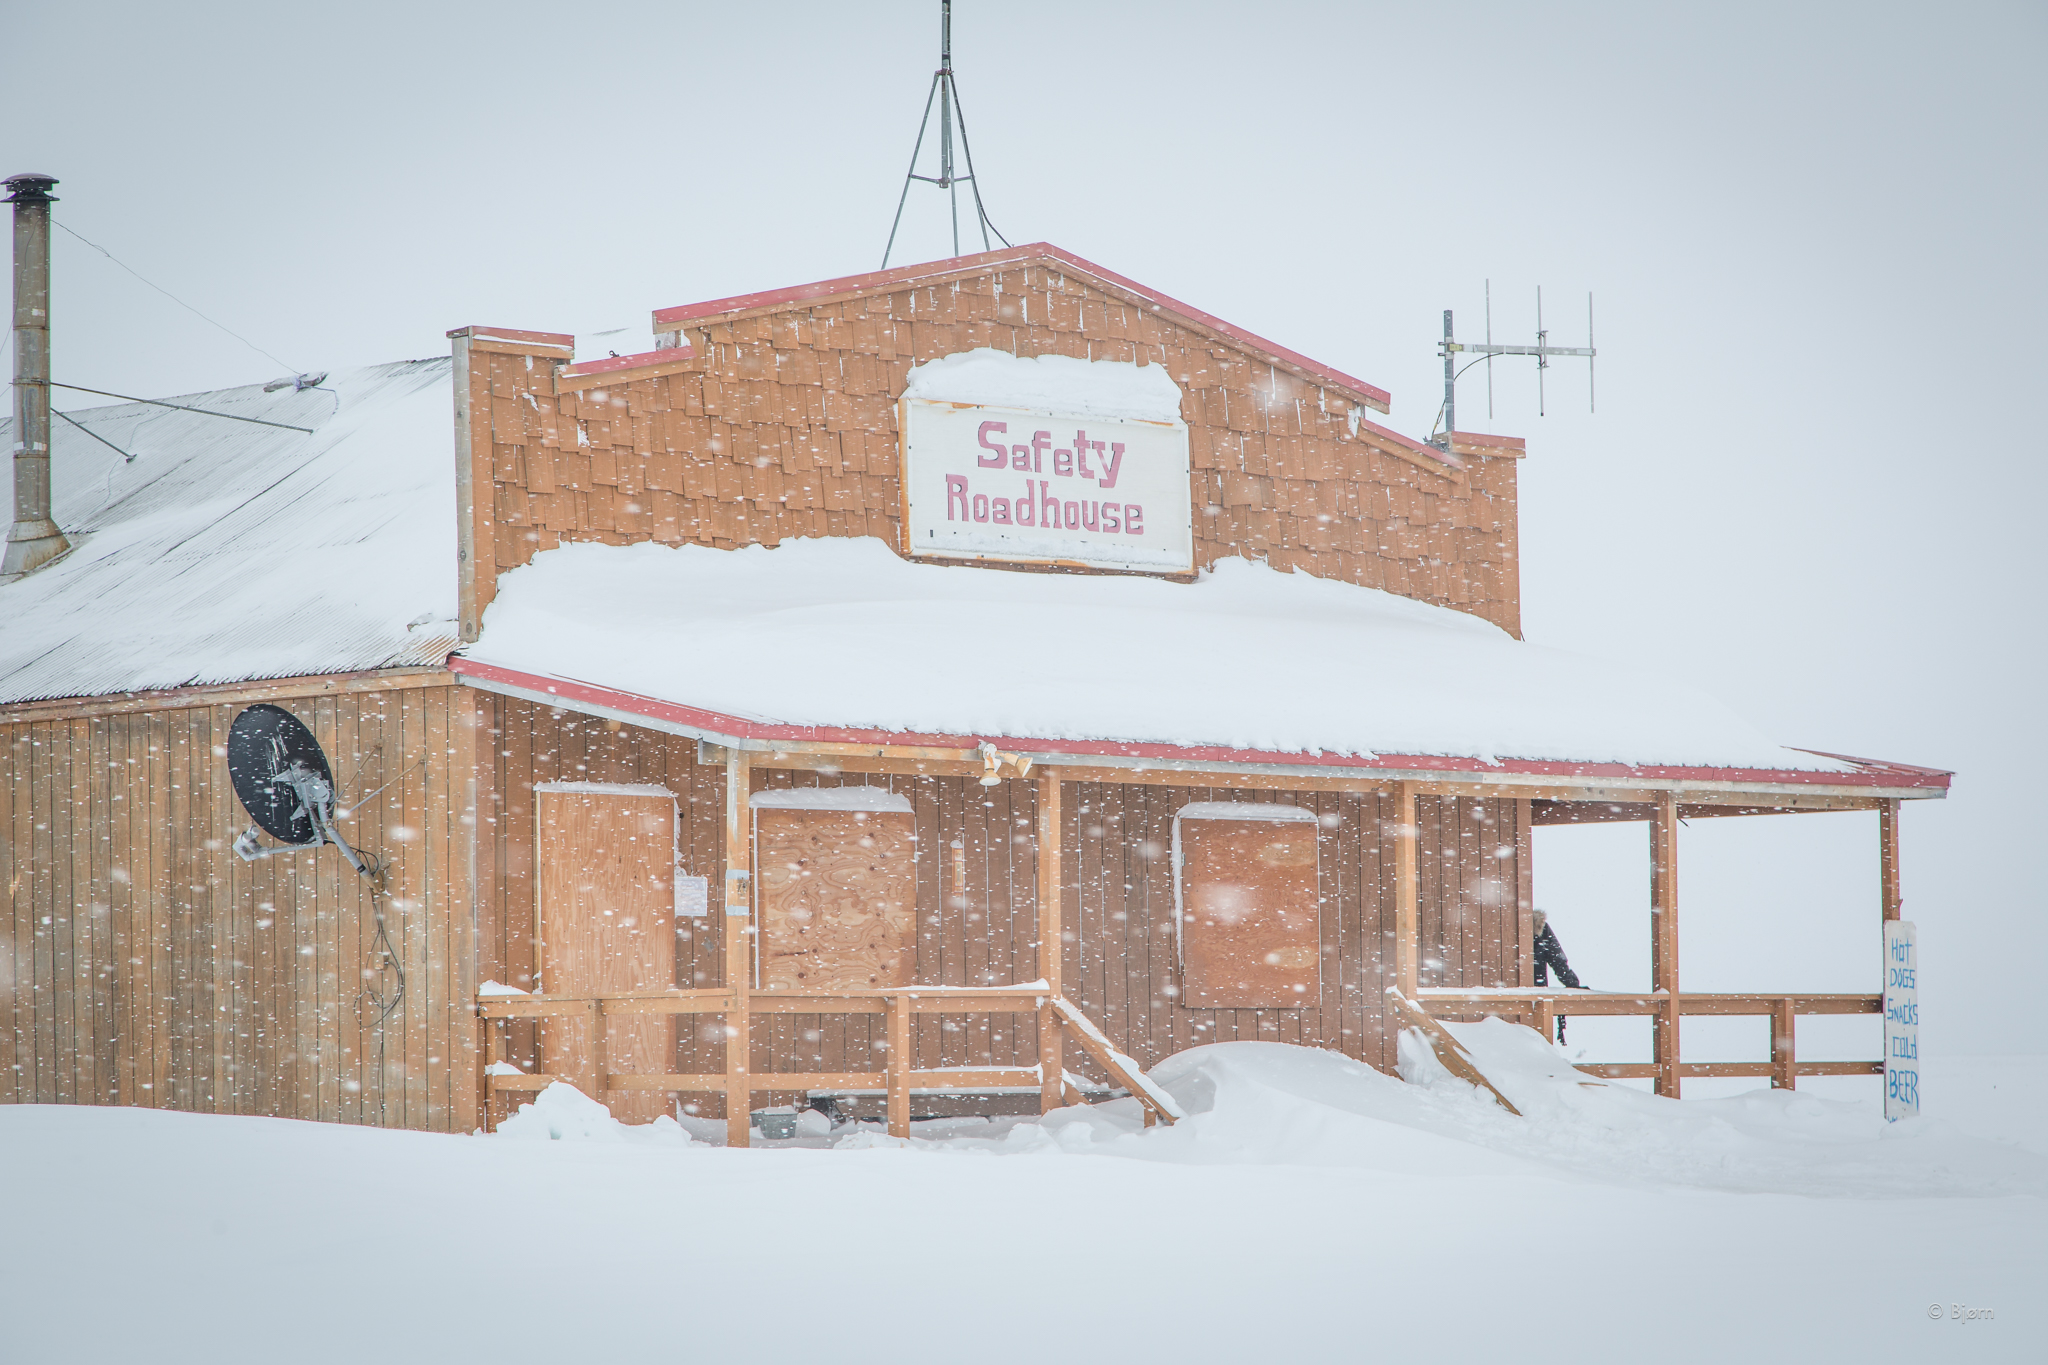 Safety Roadhouse and the last checkpoint on the Iditarod Trail.